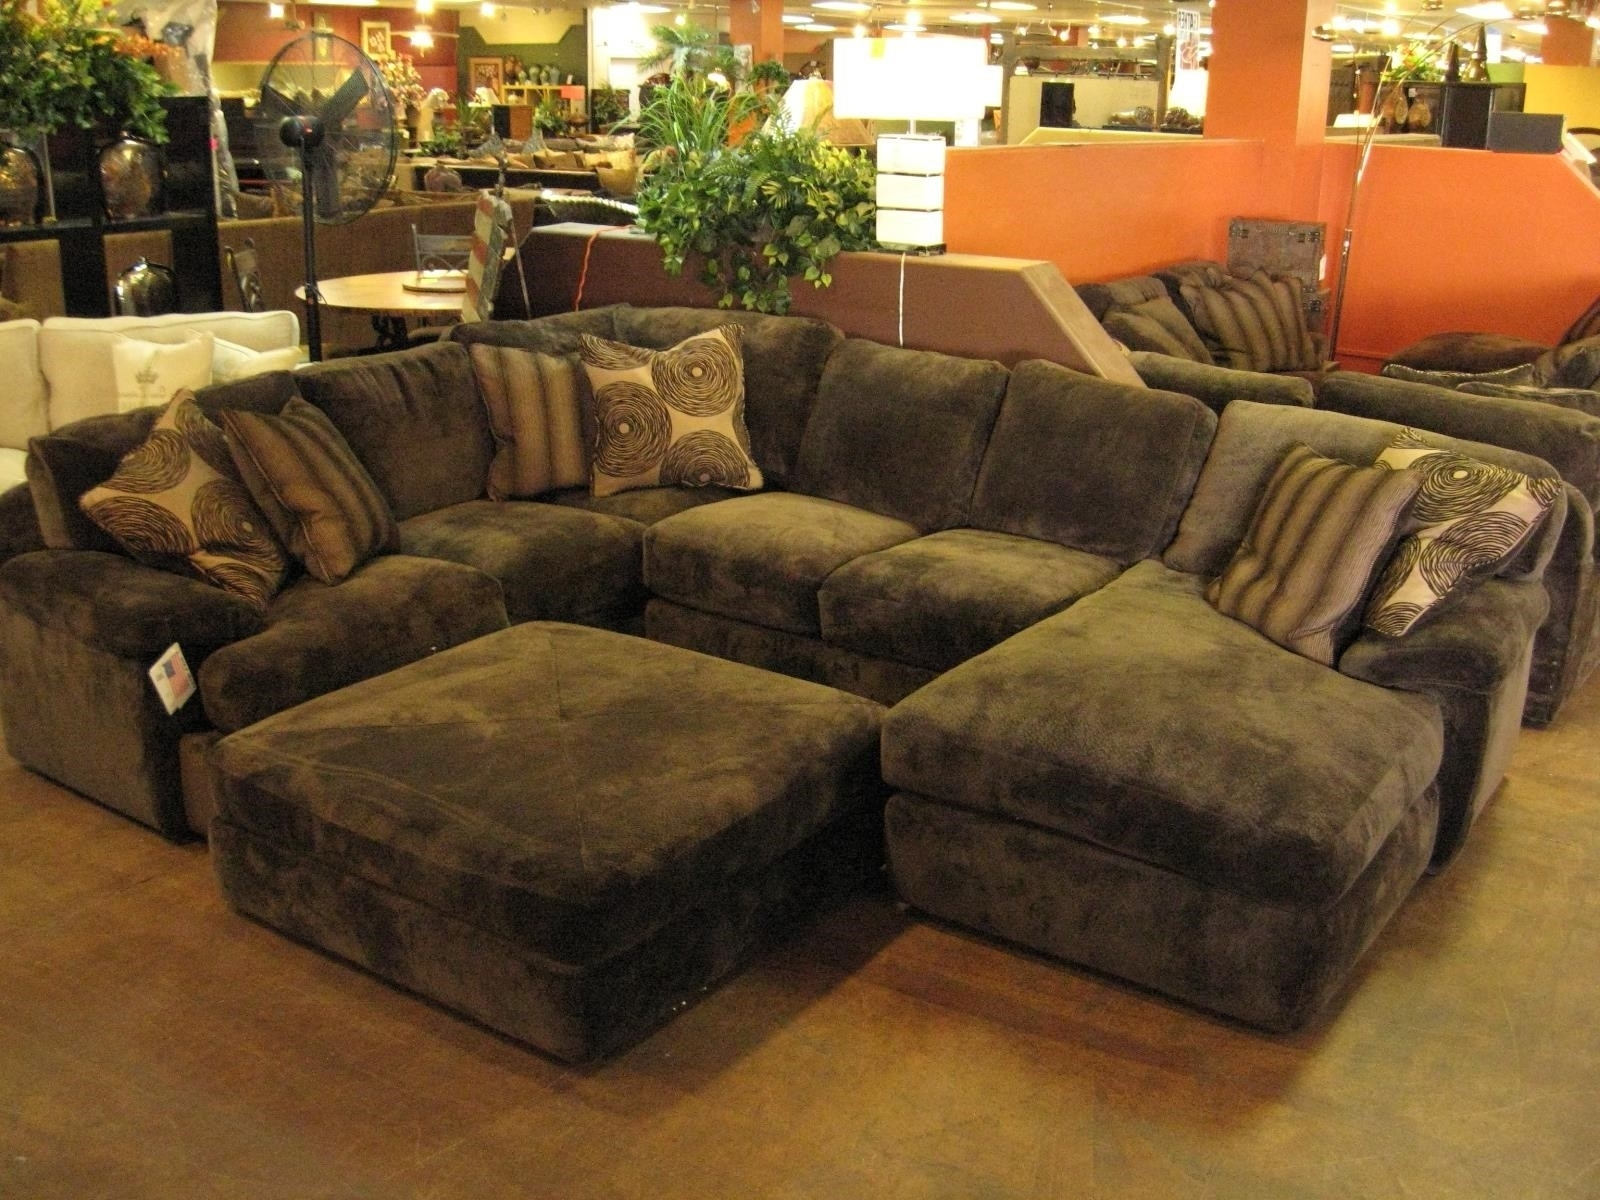 Sofa Extra Large Sectional With Chaise And Ottoman U Shaped Bedroom for Sectional Couches With Large Ottoman (Image 15 of 15)